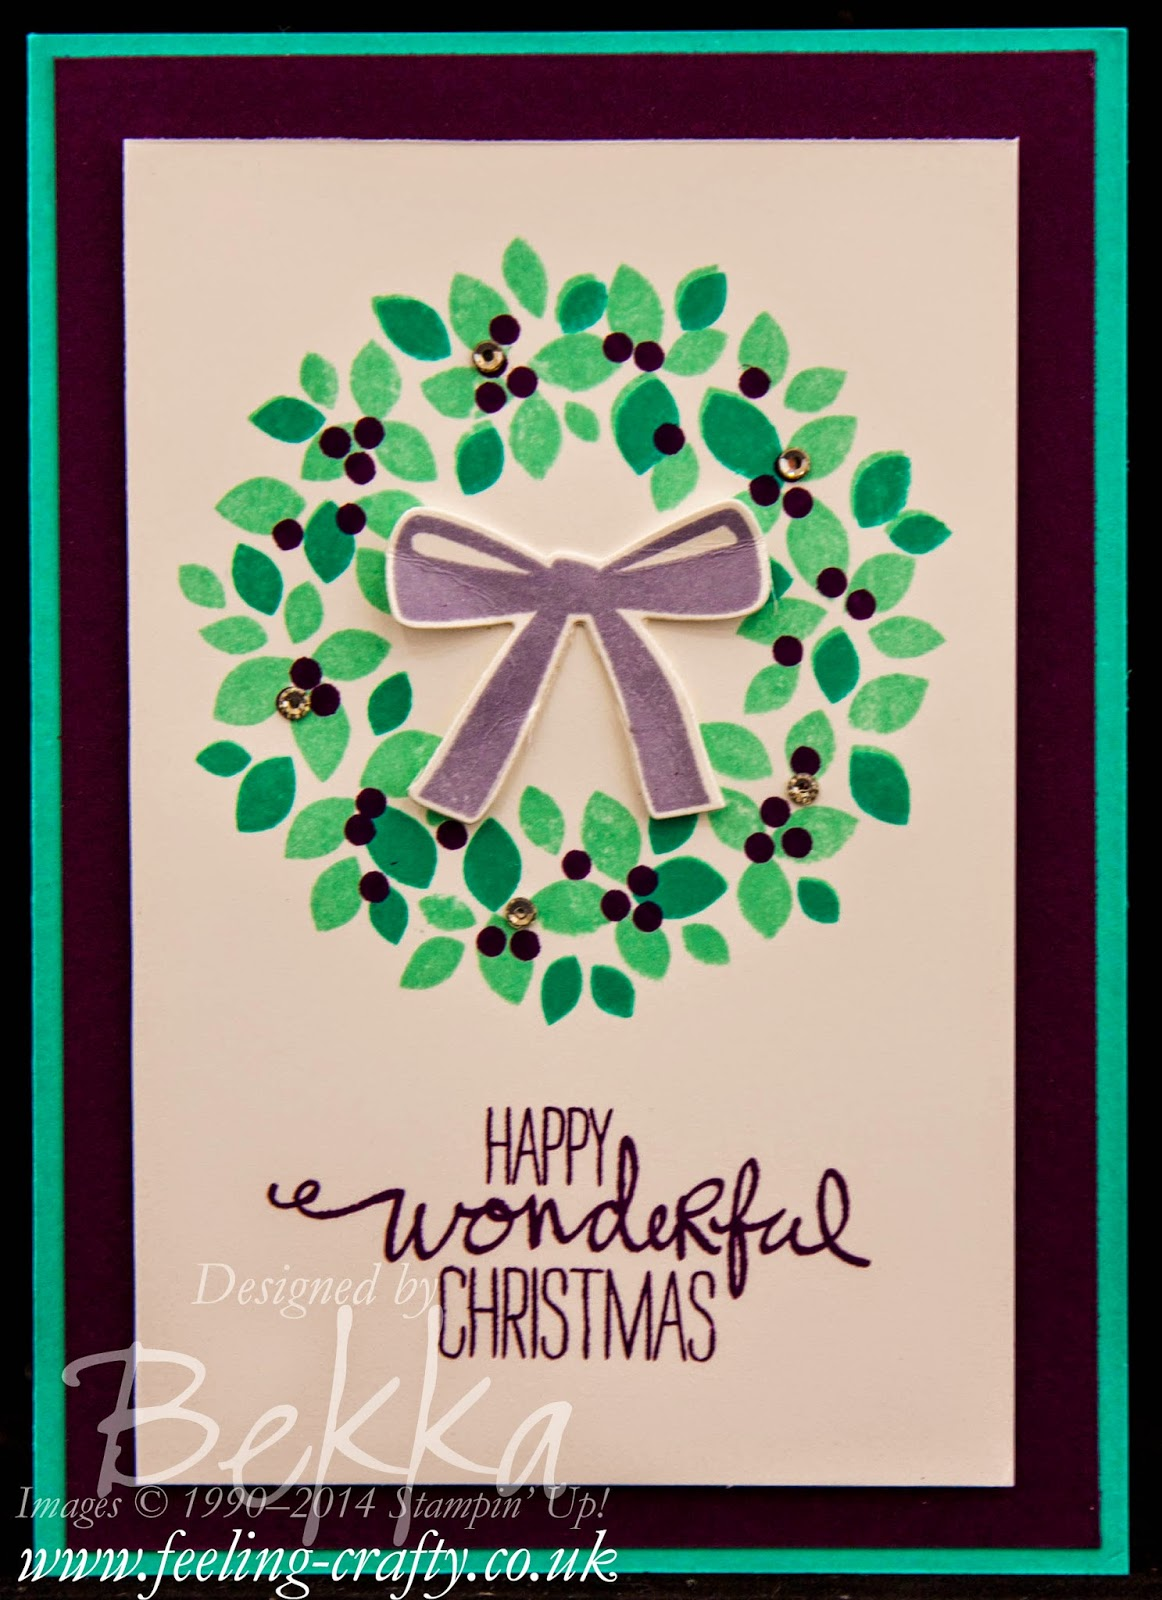 Wondrous Wreath Christmas Card by Stampin' Up! UK Independent Demonstrator Bekka Prideaux - check out her blog for lots of great ideas